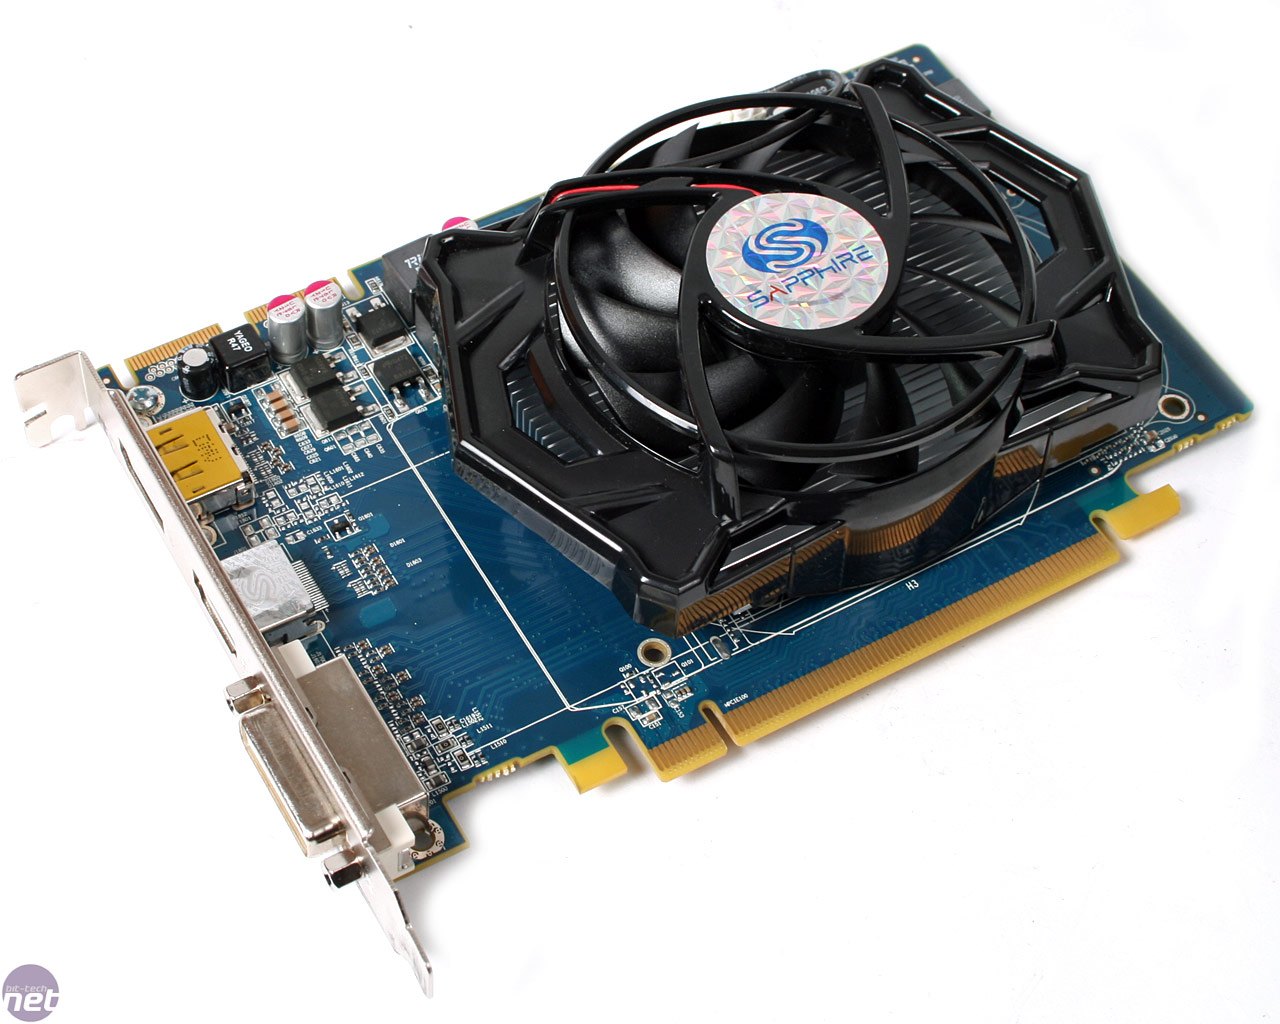 Sapphire radeon hd 5670 video adapter скачать драйвер